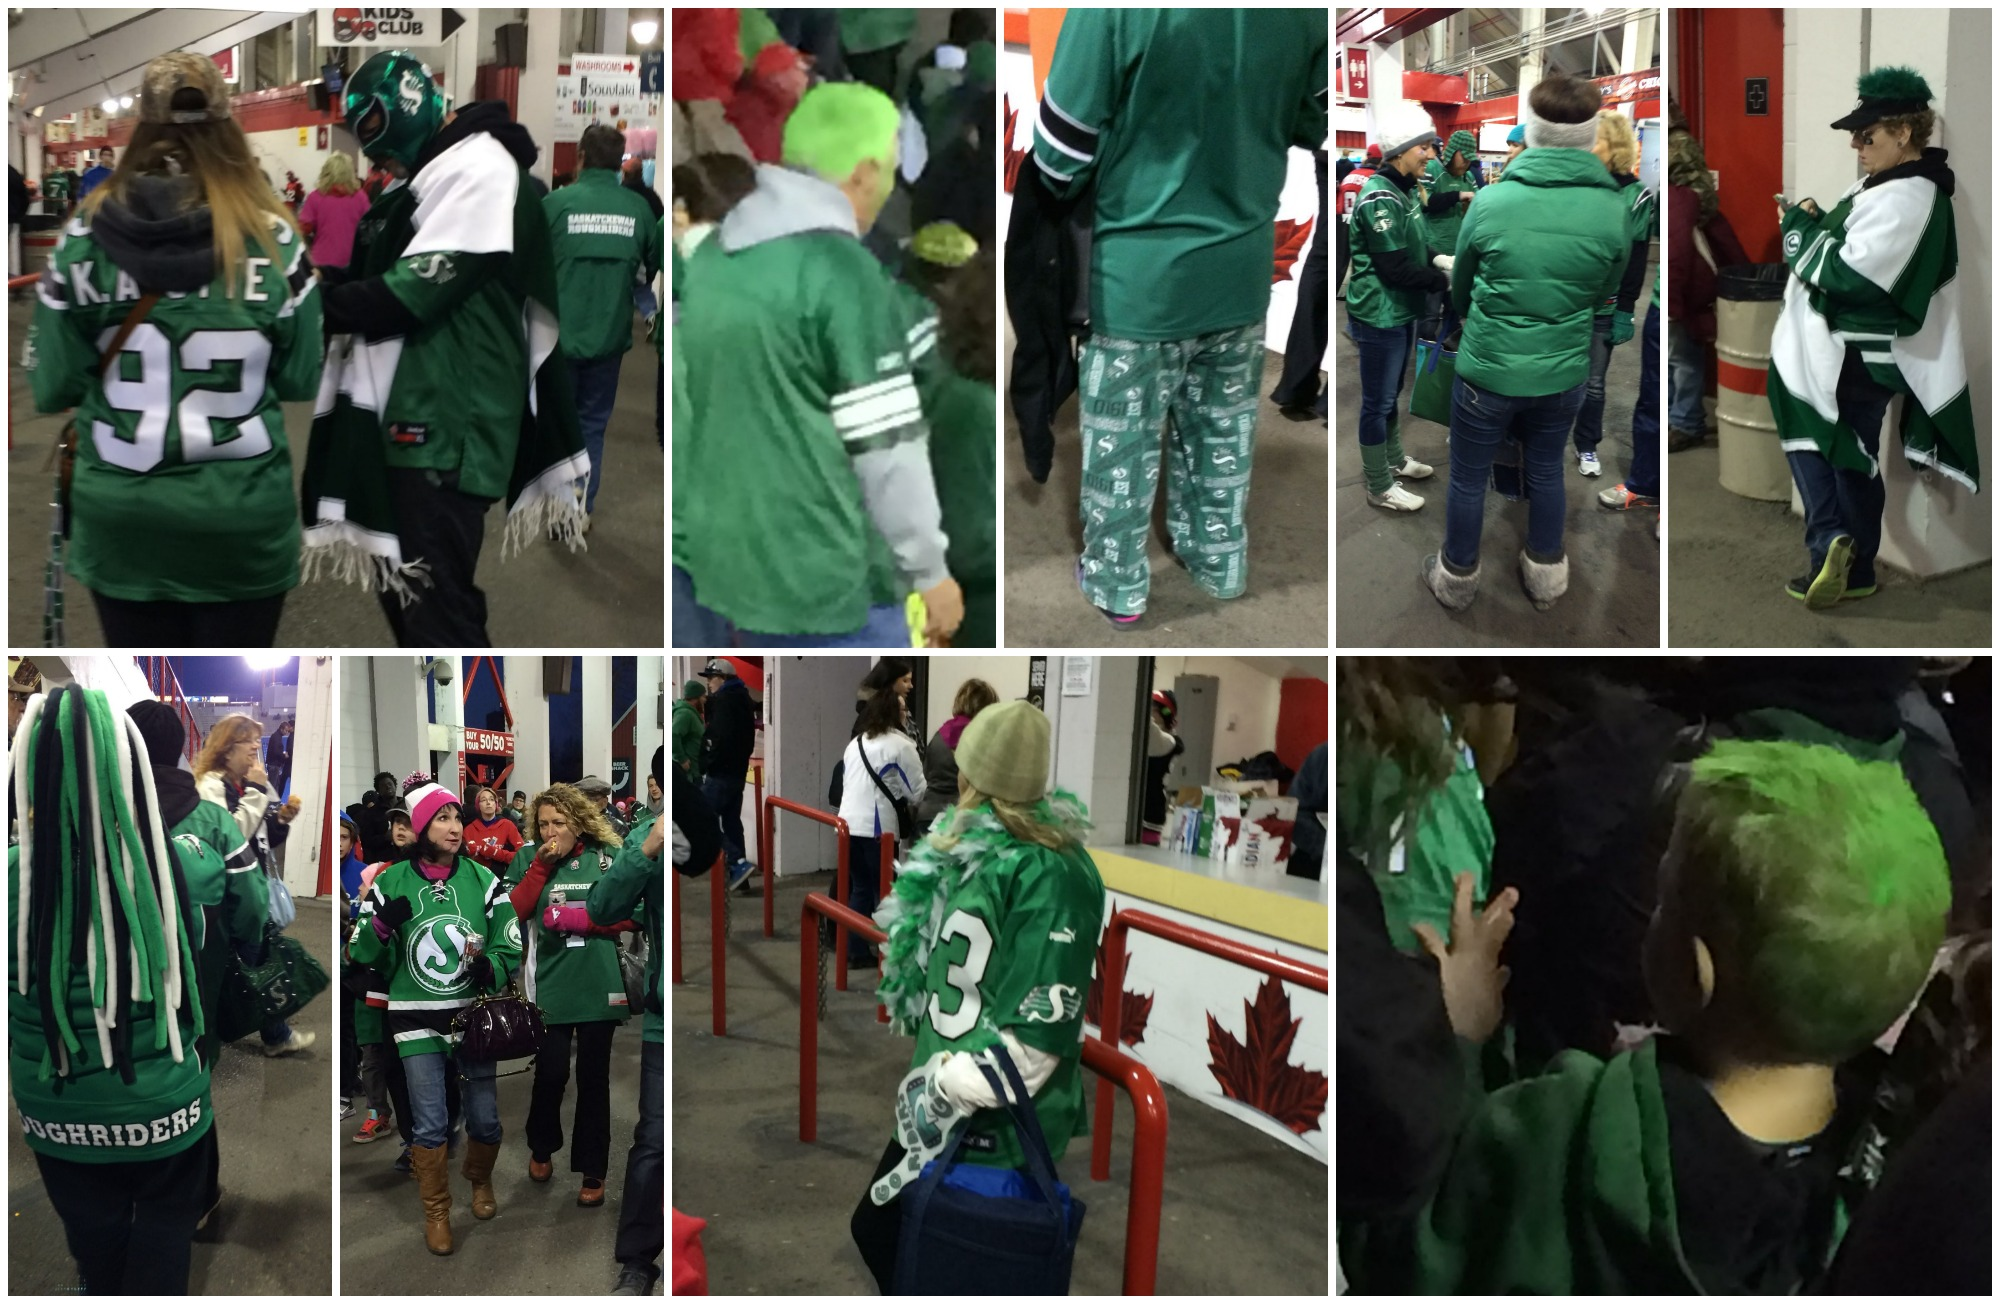 Rider Fans at a Stamps Game